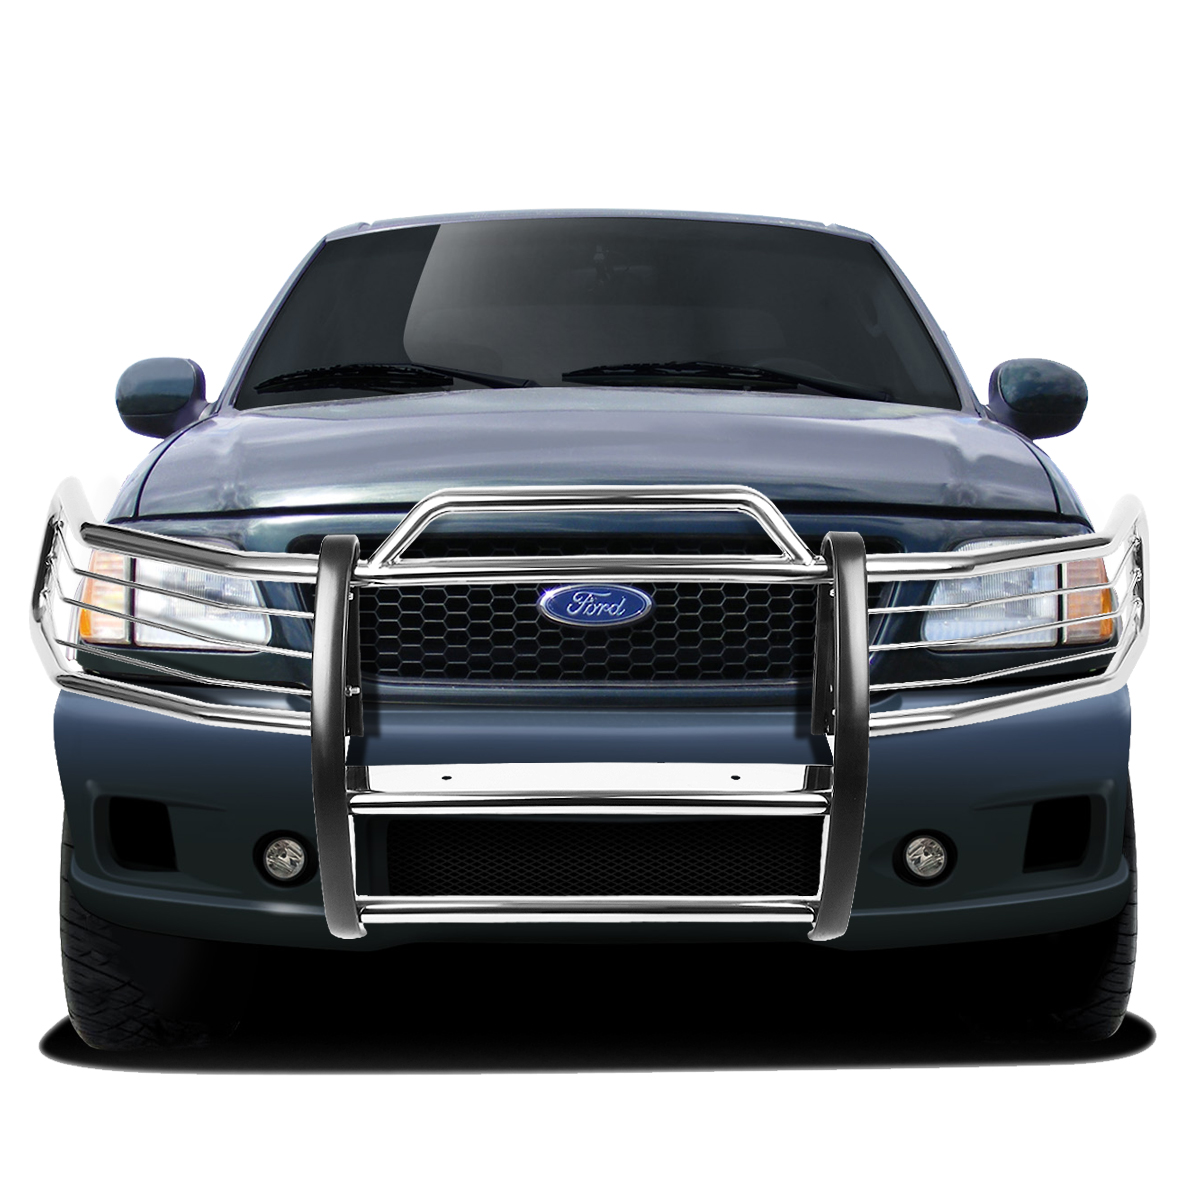 97 98 ford expedition f 150 4wd front bumper protector brush grille guard chrome